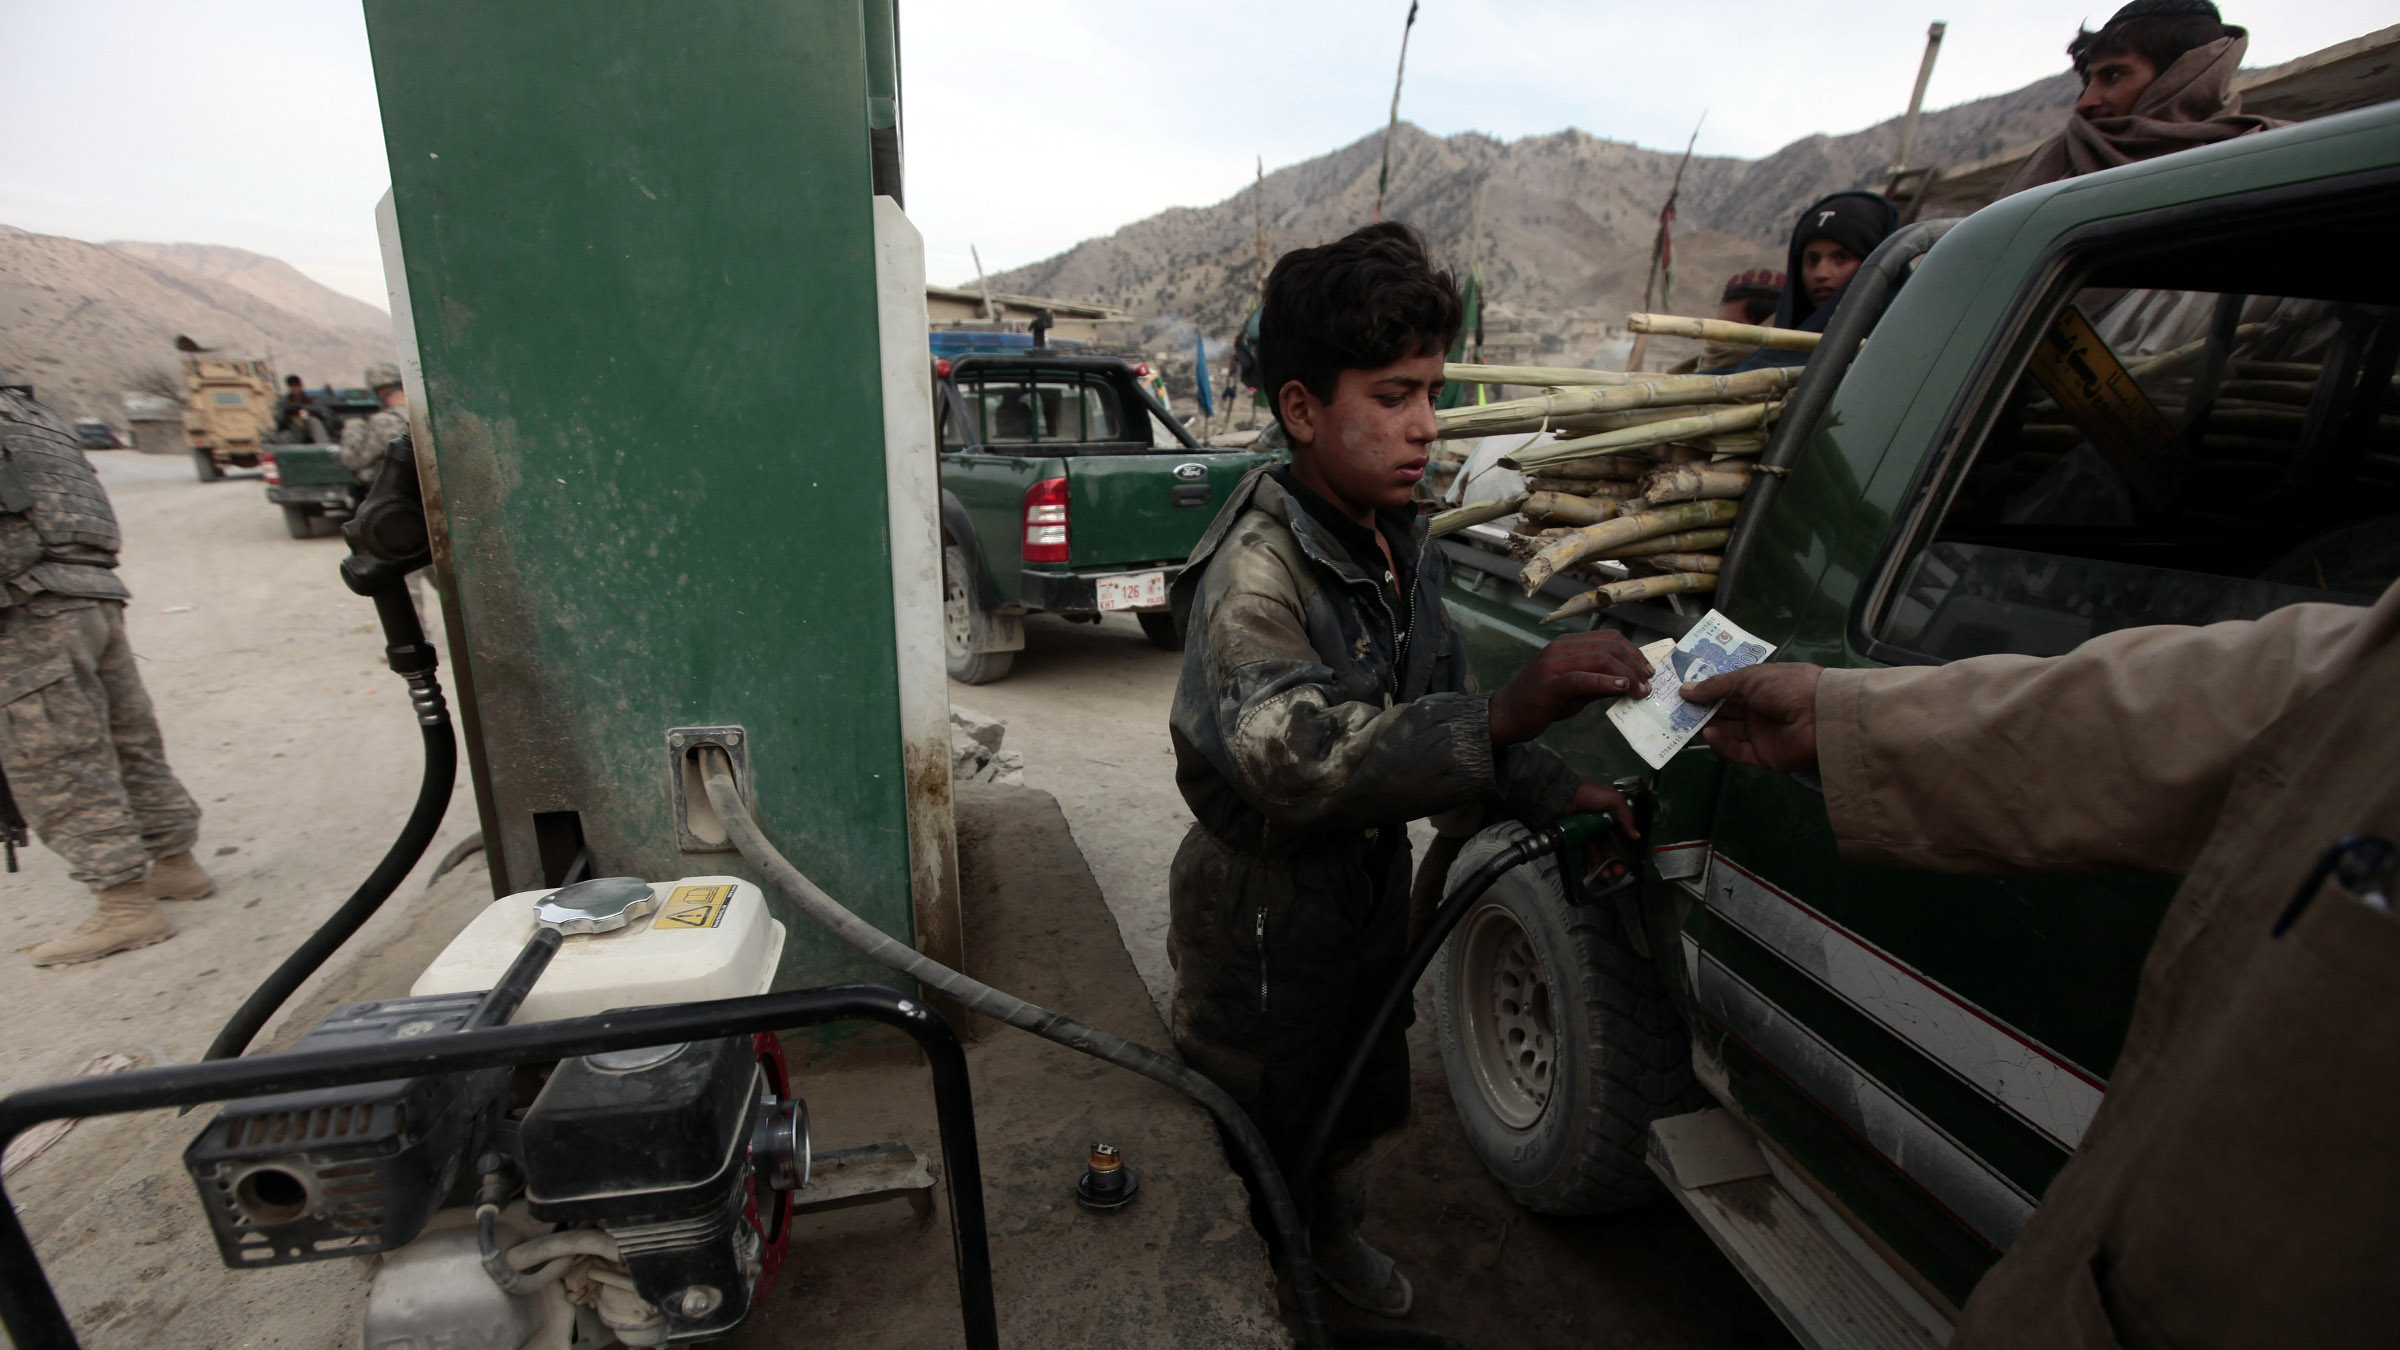 An Afghan employee fills a car with petrol at a gas station in the town of Saway-kowt in Khowst province, Afghanistan, December 26, 2009.